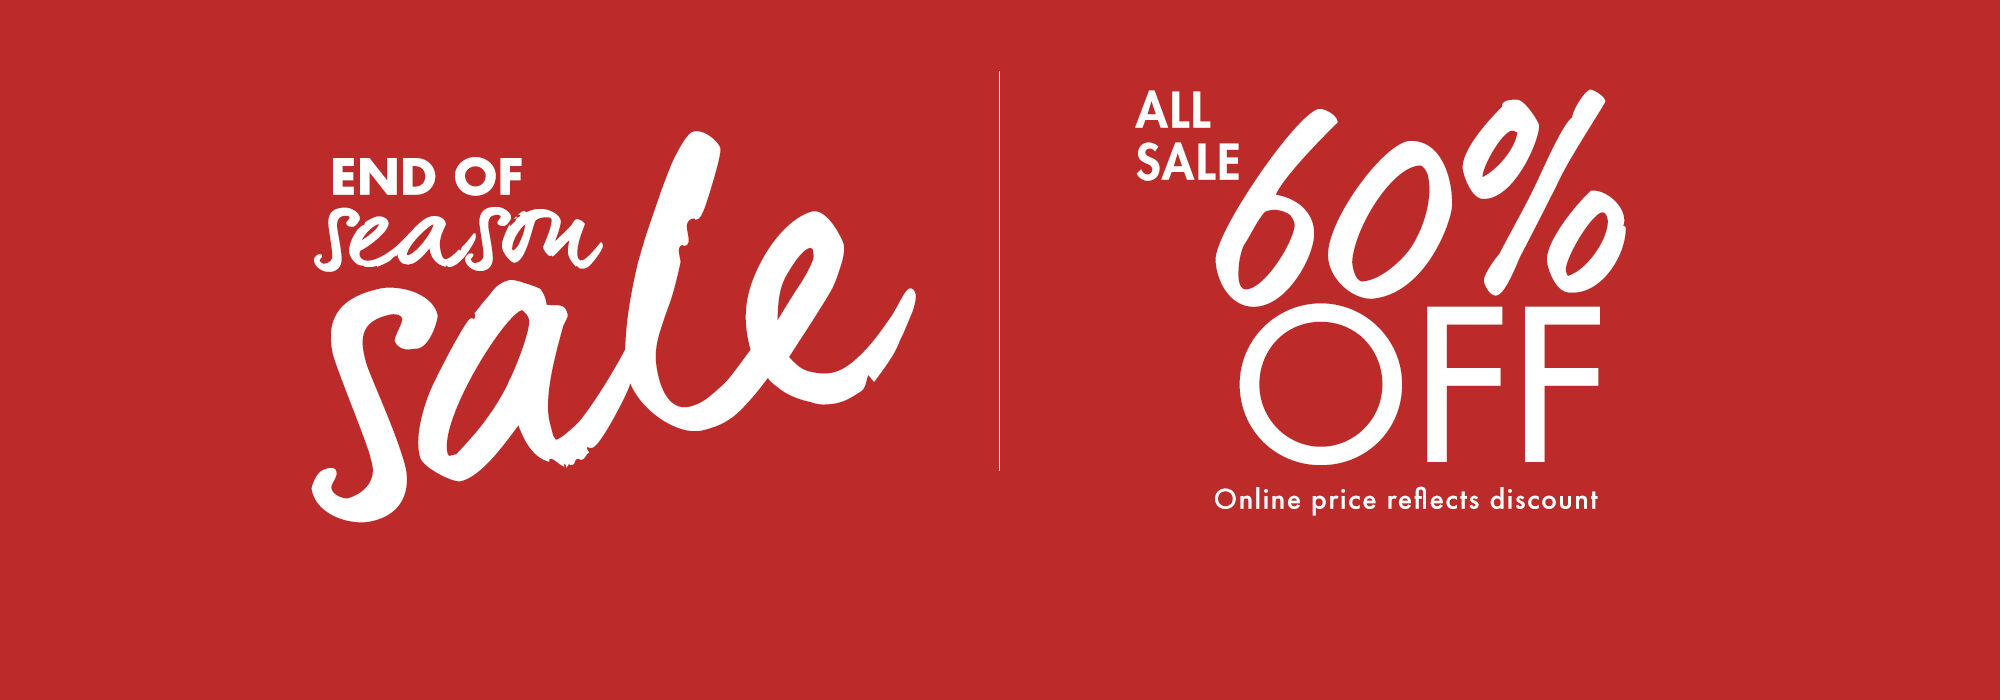 End of season sale. Up To 60% Off. Online price reflects discount.